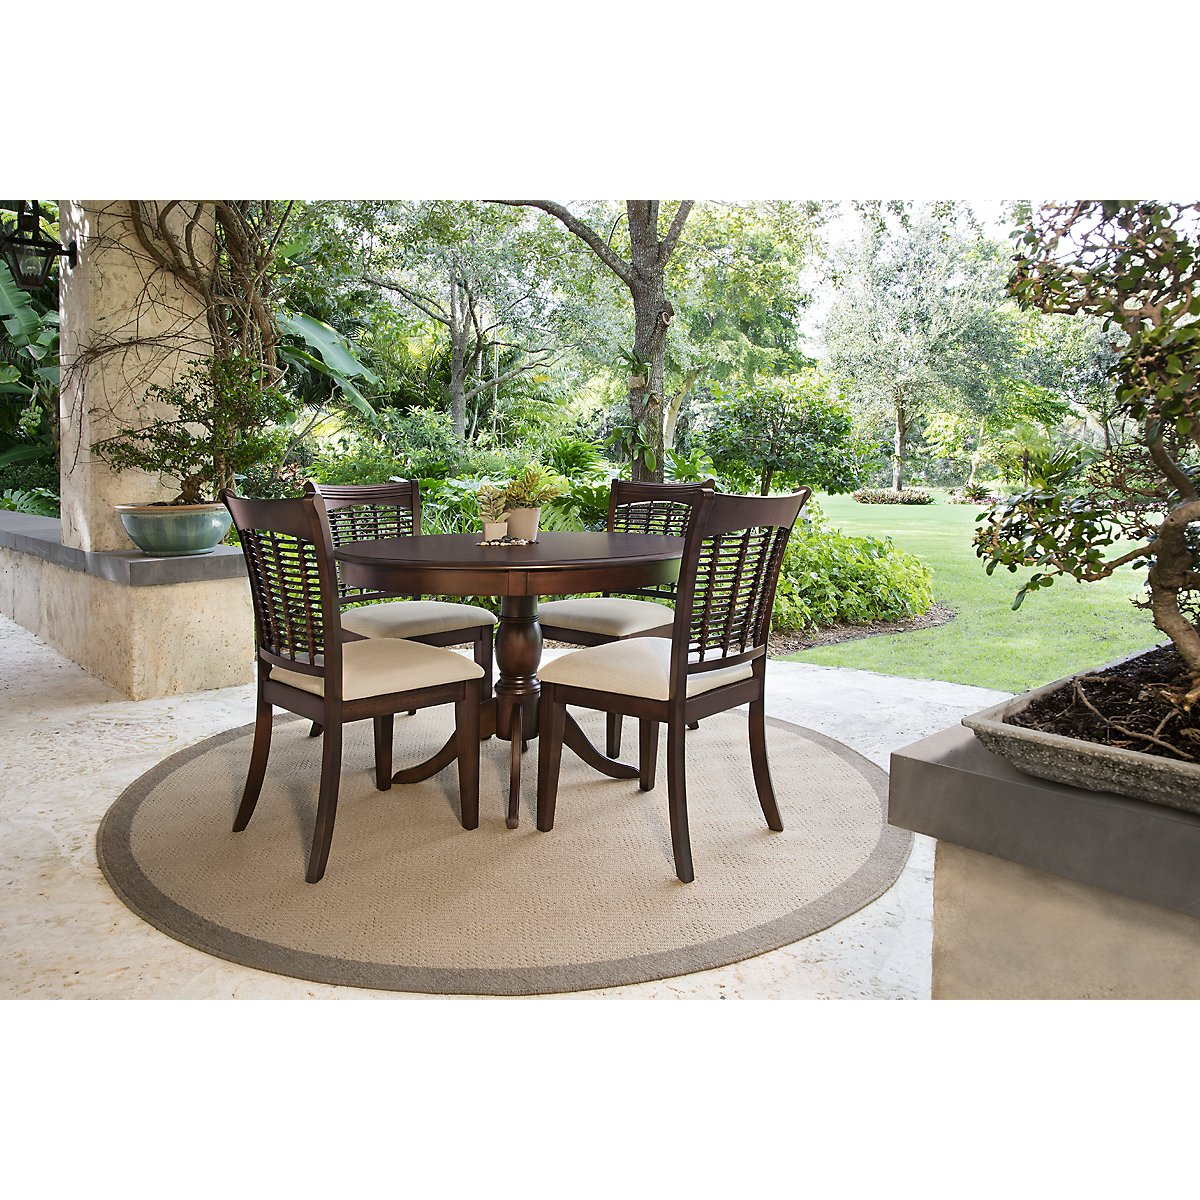 Bayberry Dark Tone Round Table 4 Chairs